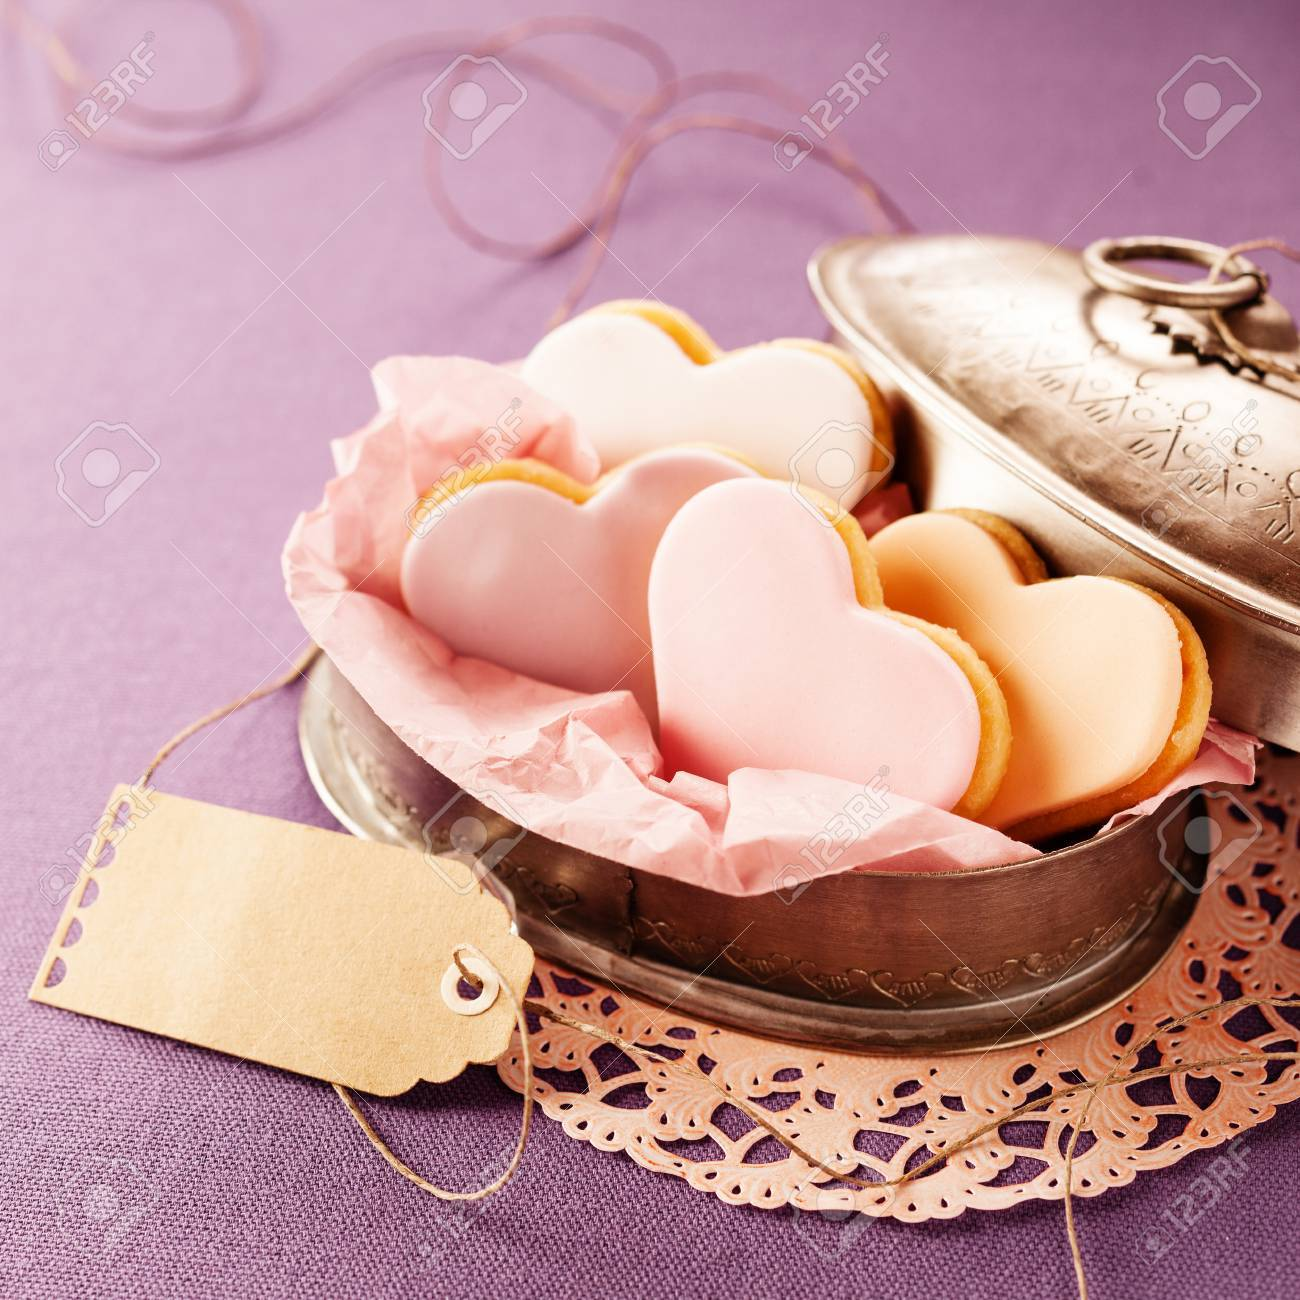 Delicious Heart-shaped Fondant Cookies Served In An Open Vintage ...